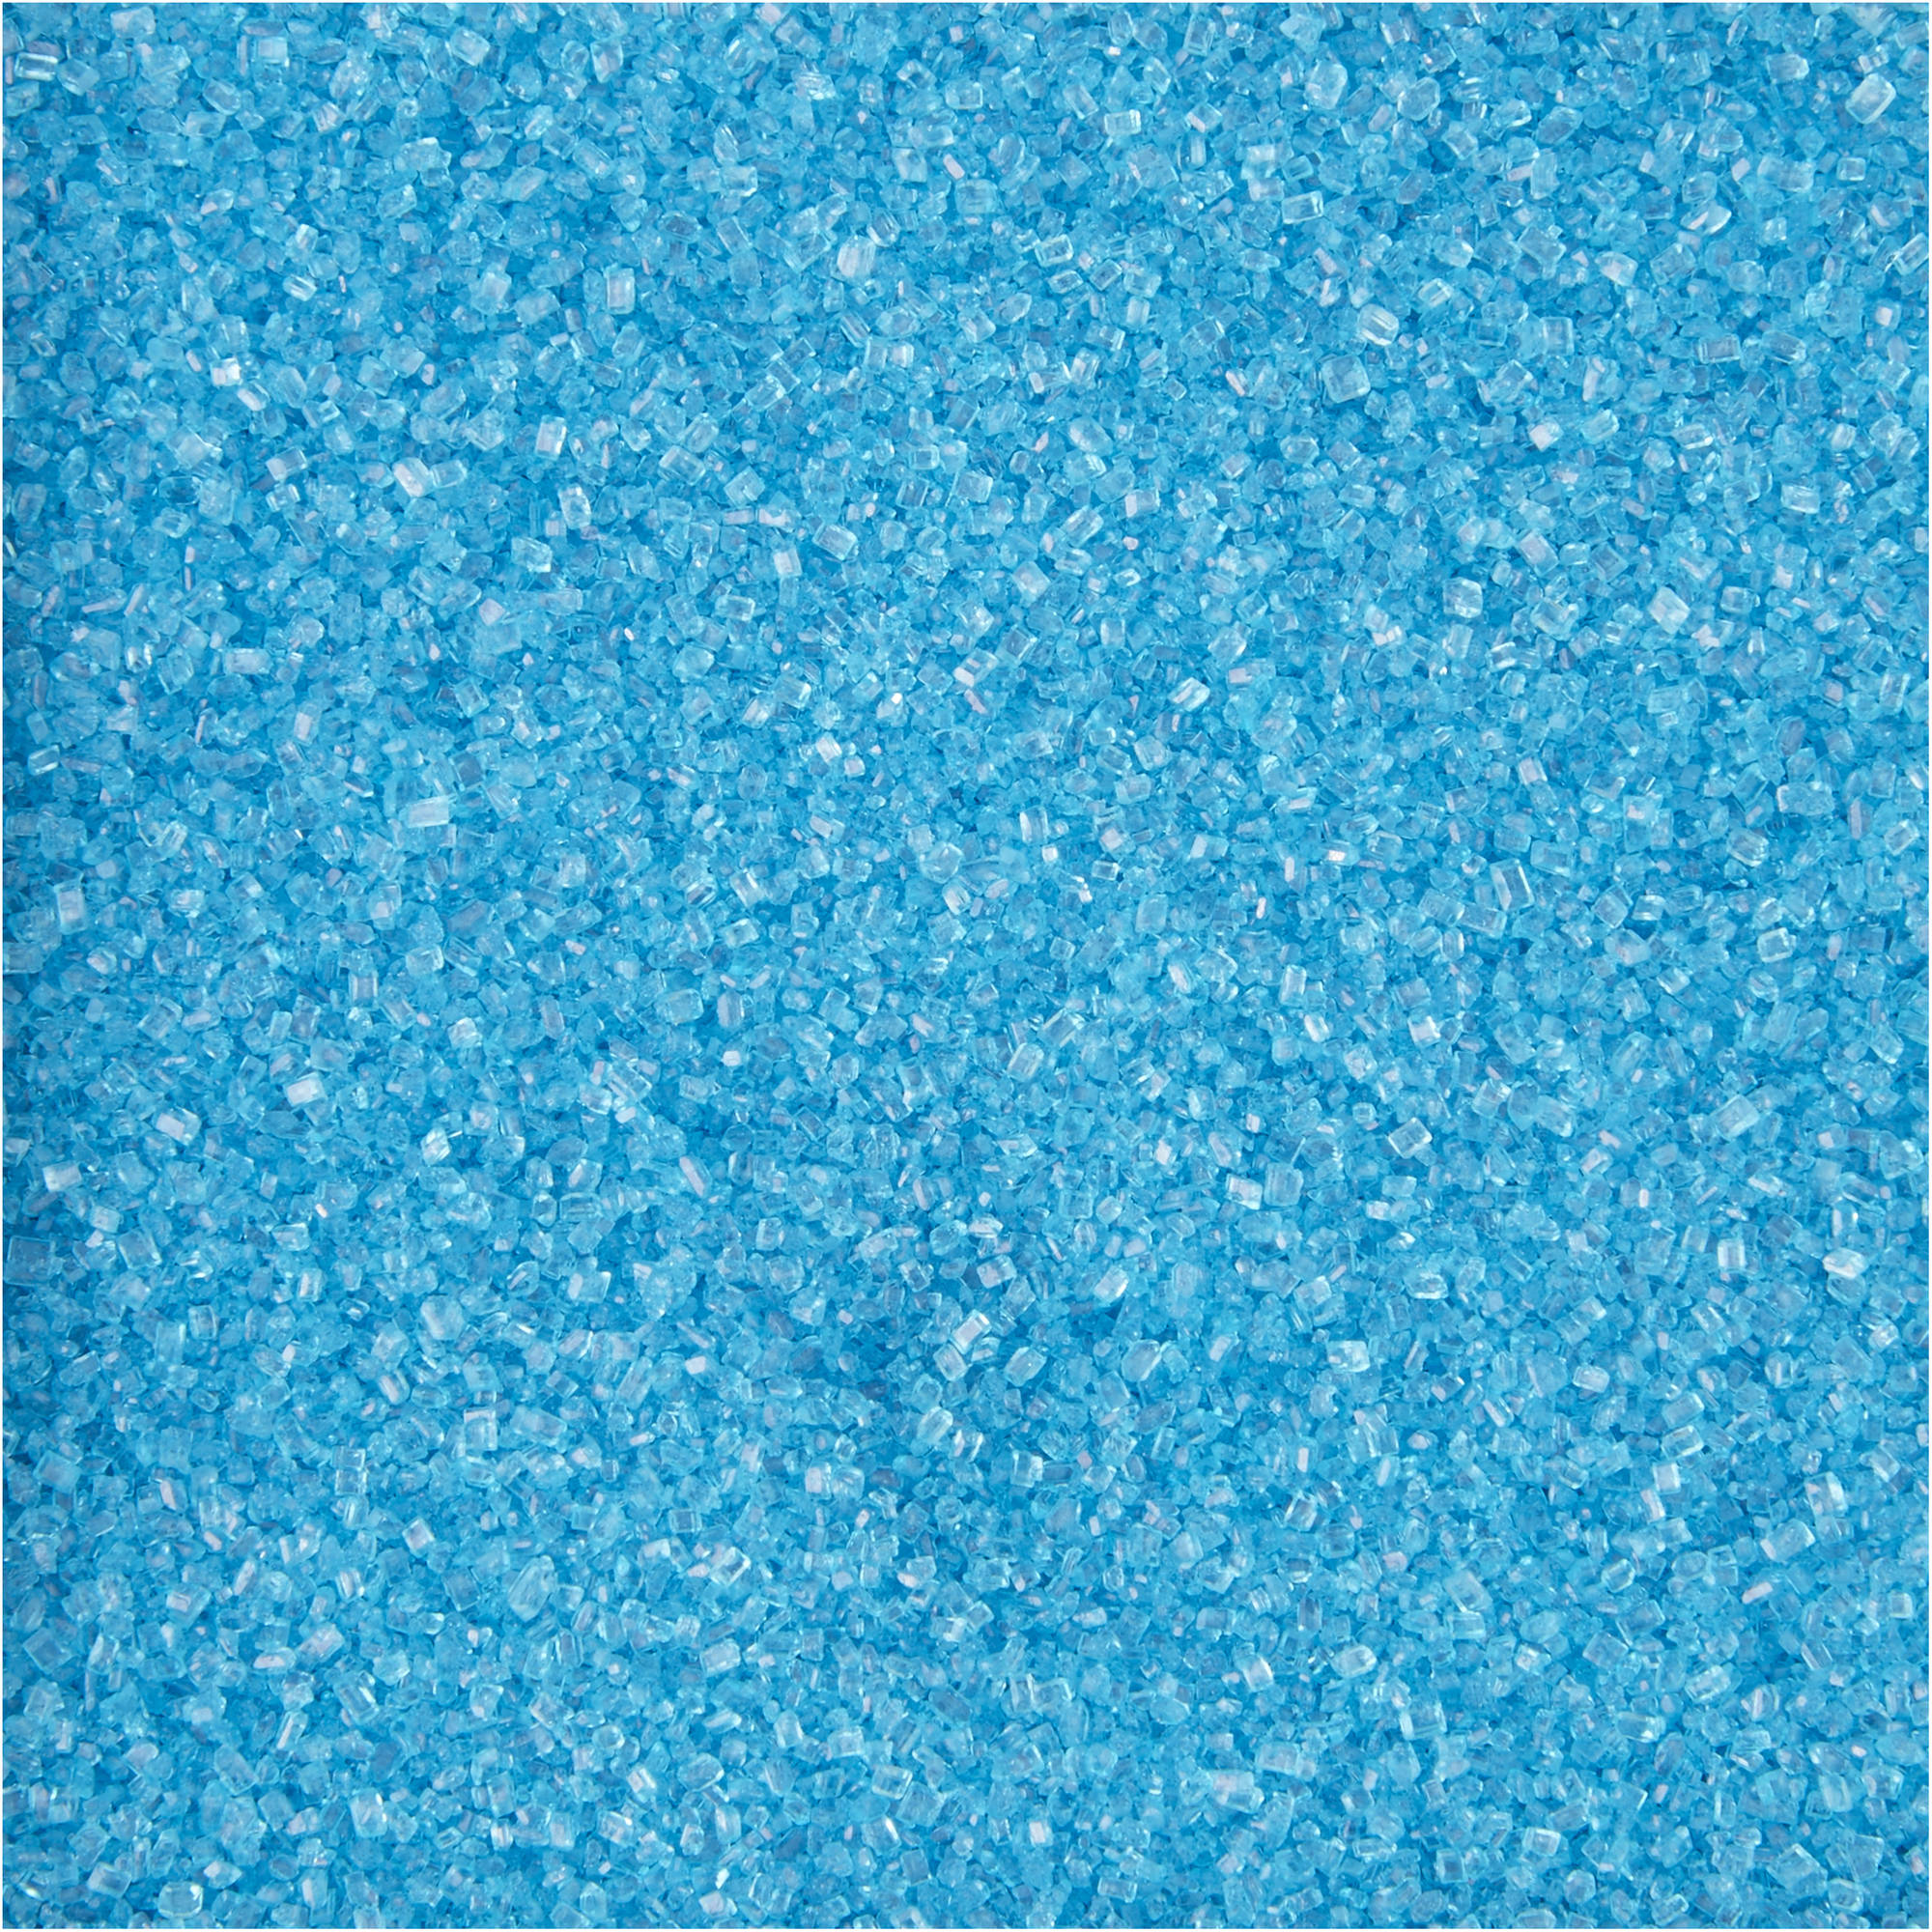 Wilton Short Stack Blue Sanding Sugar Sprinkles, 710-9850